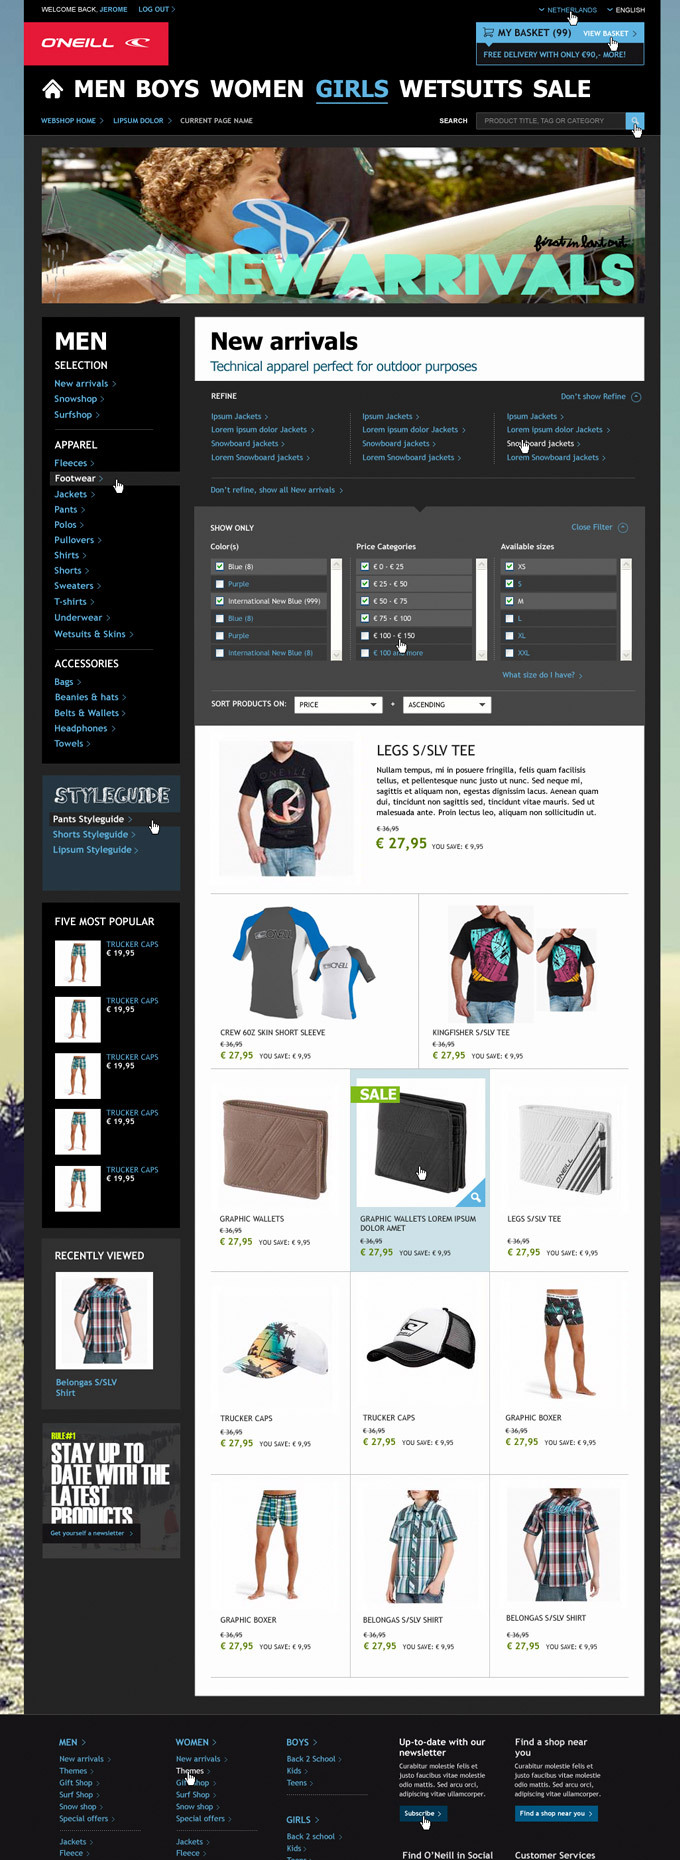 Afbeelding 4 van 7 - O'Neill global webshop re-design - Product Overview pagina